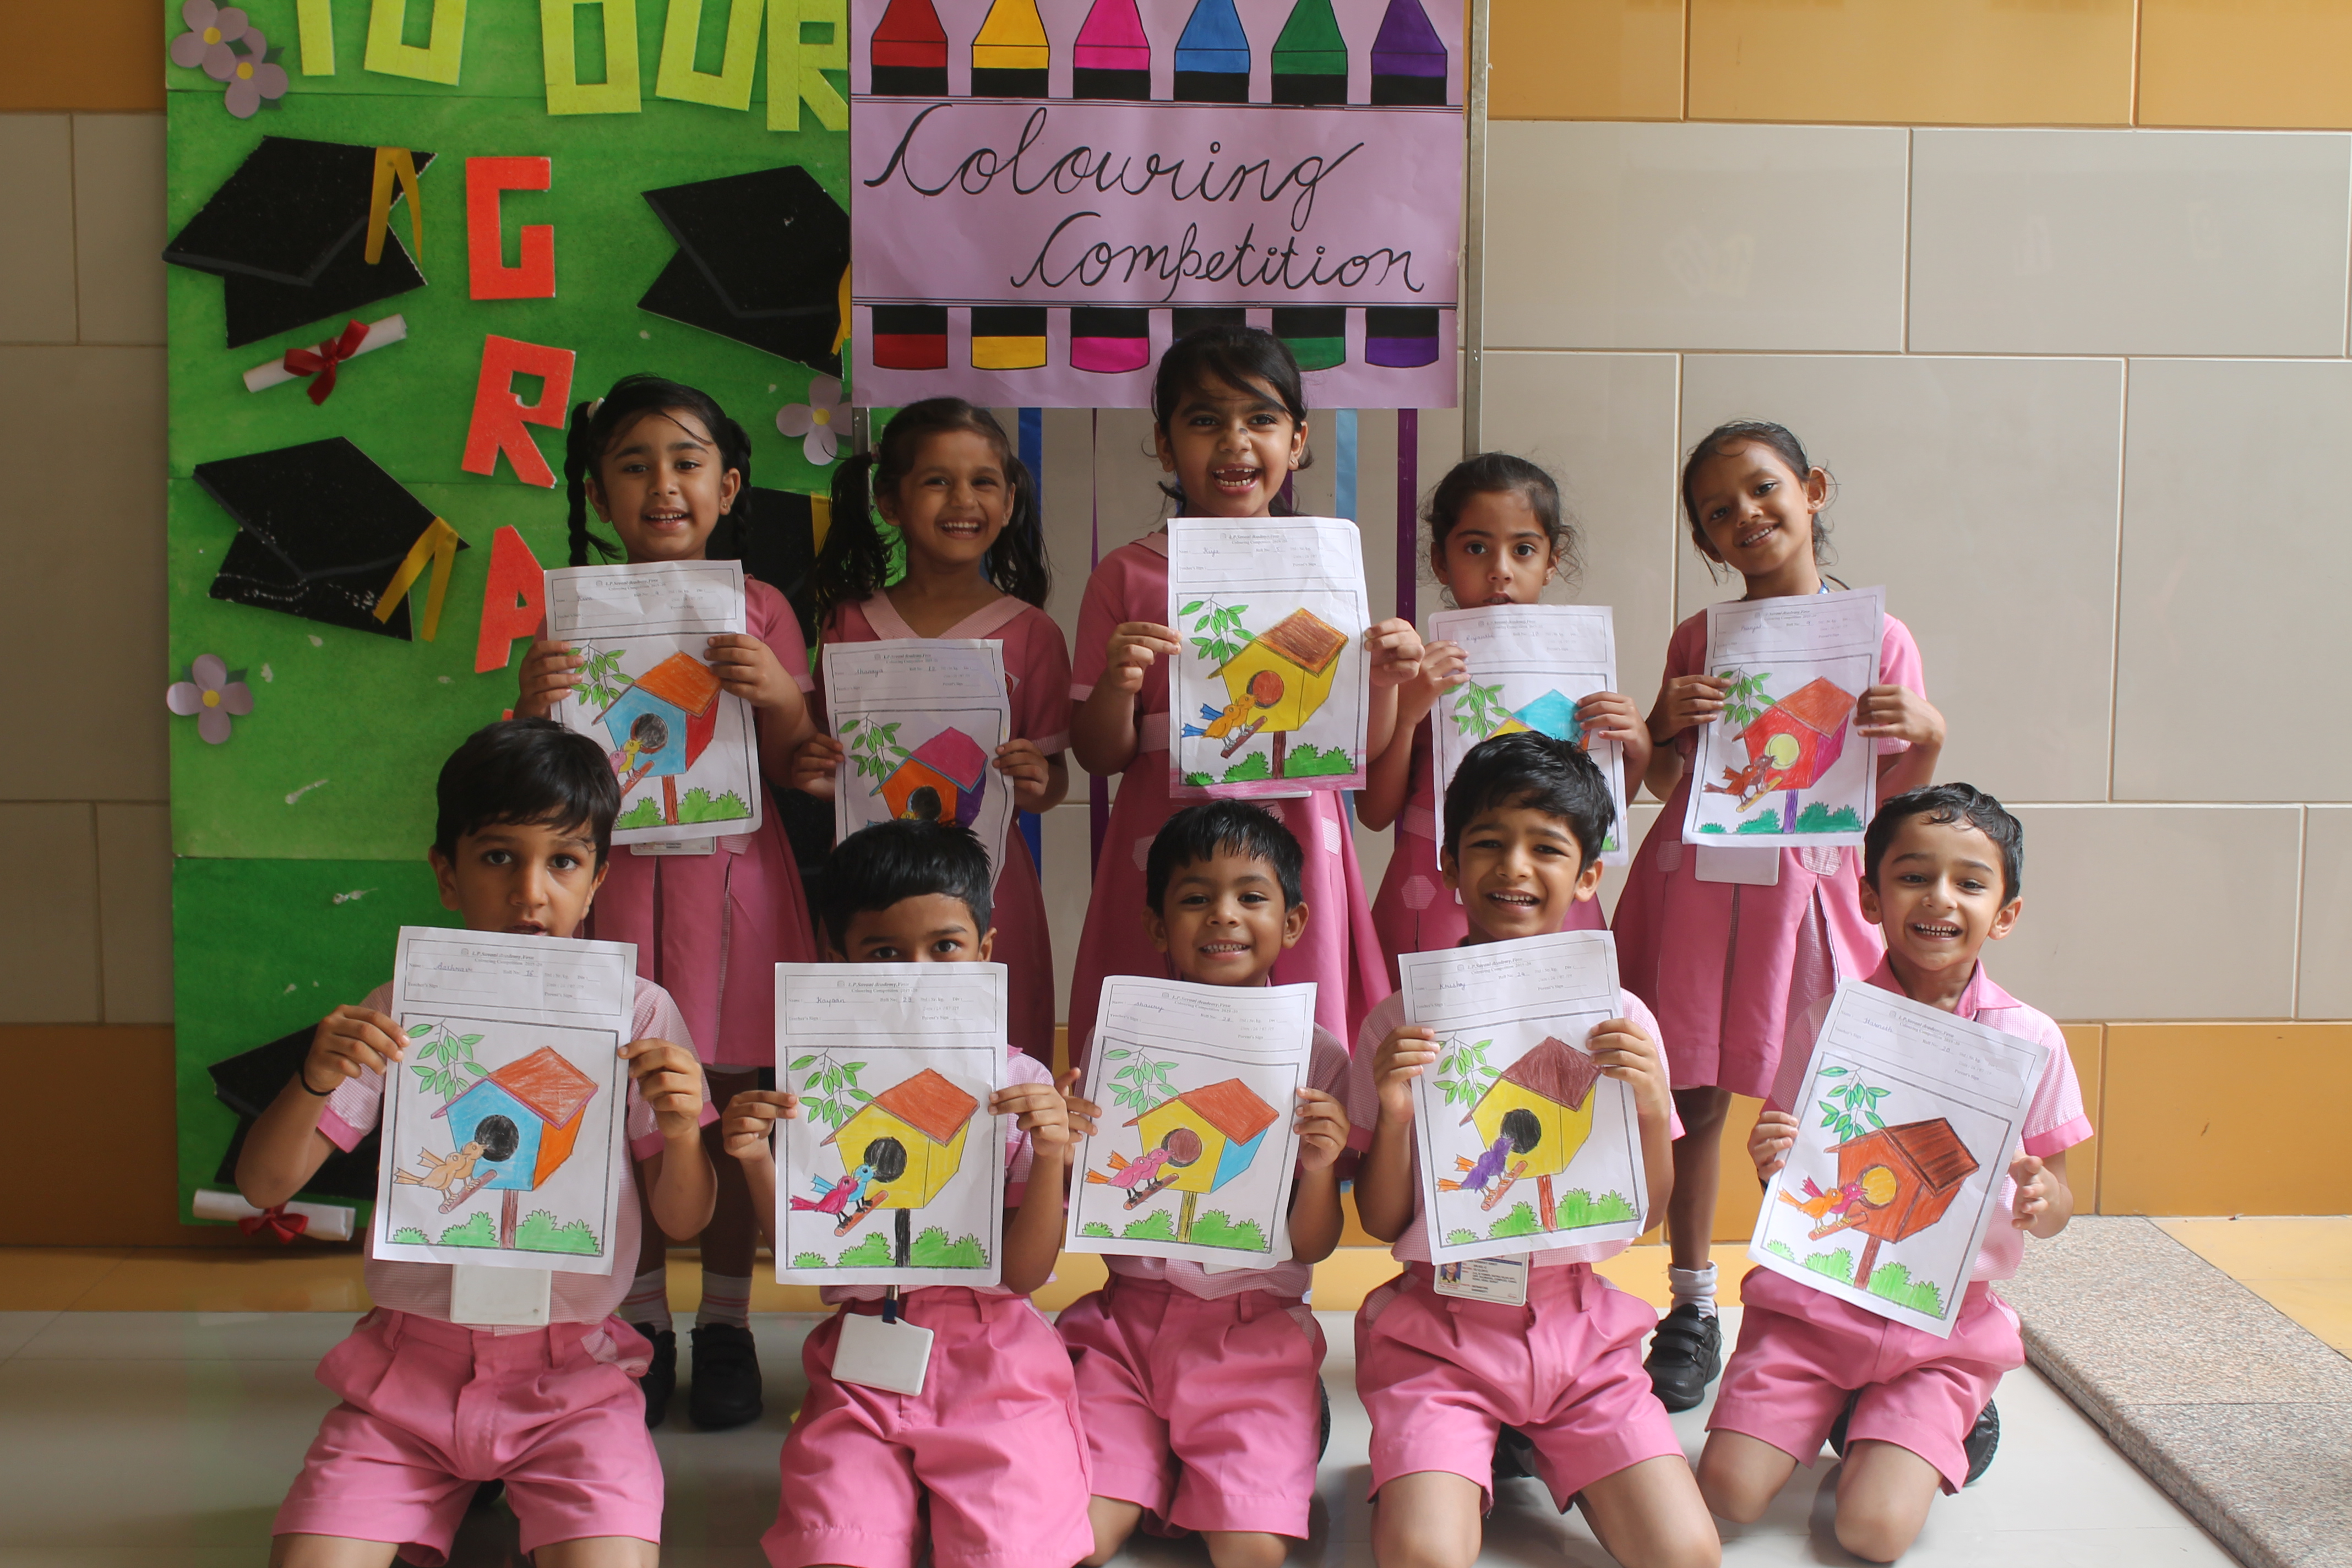 Coloring Competition